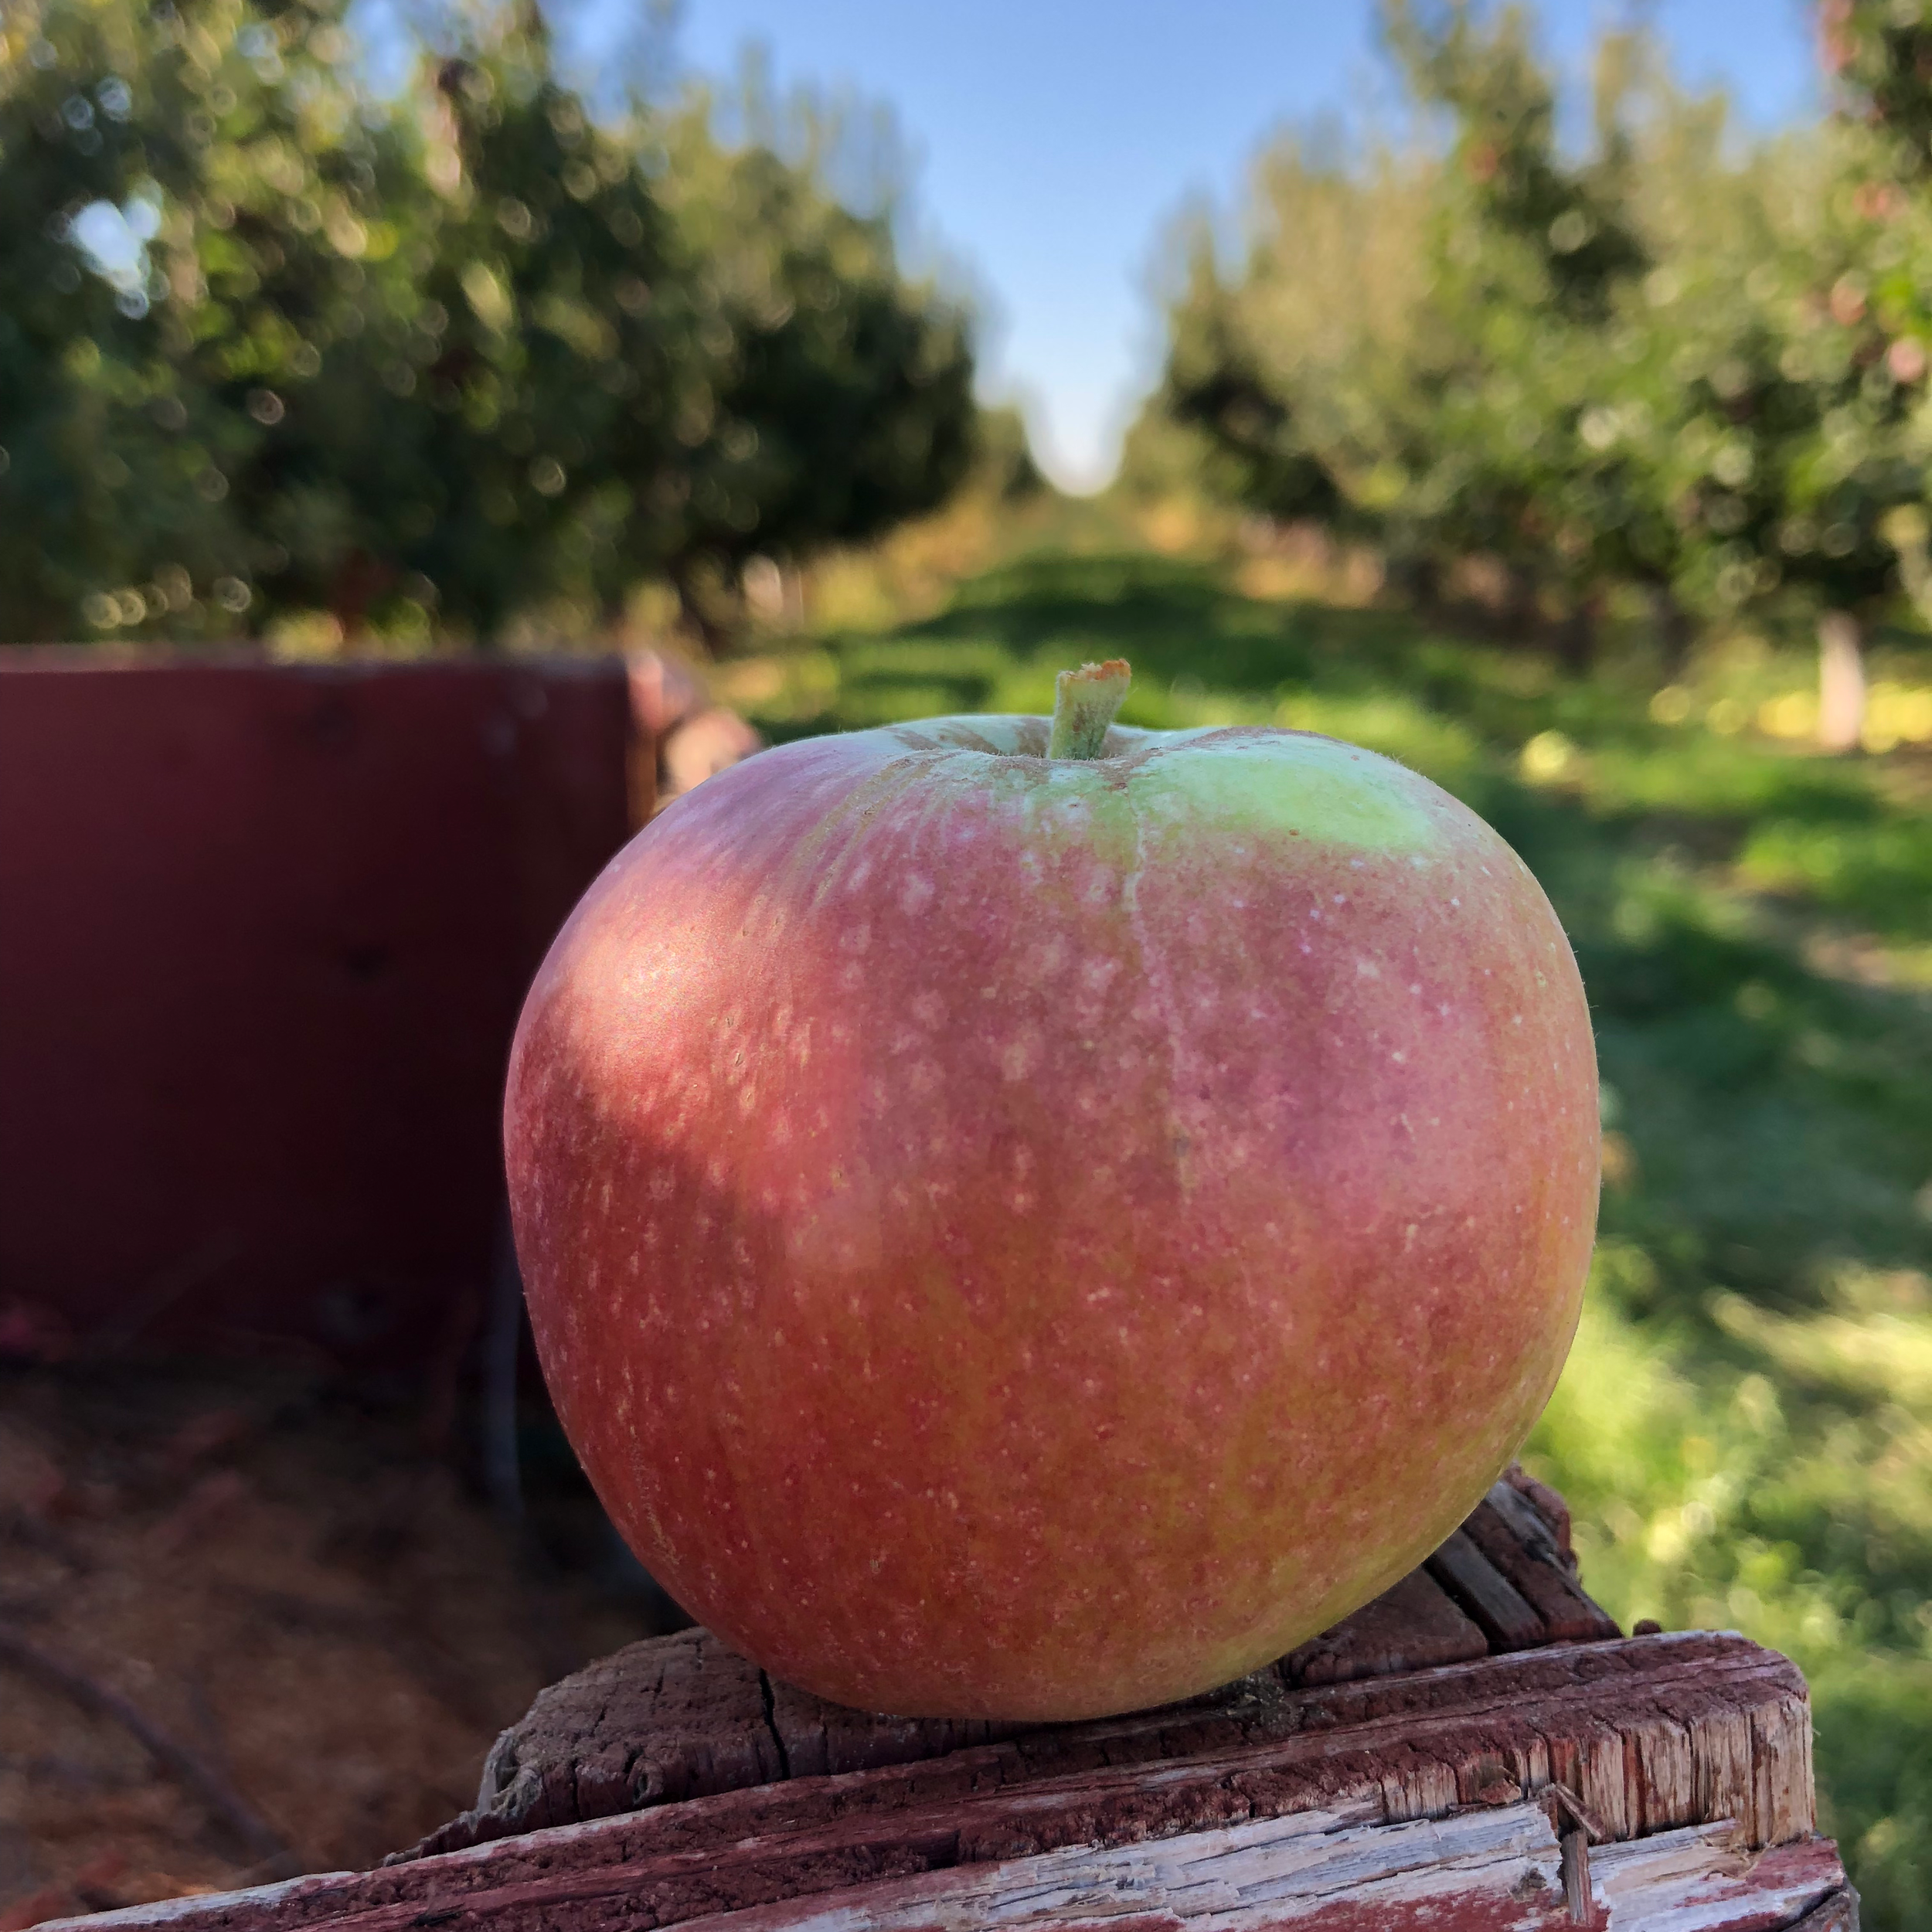 Dabinett - This English cider apple that was discovered in Someret around 1850. It is presently one of the most popular modern cider varietals. It is Bittersweet with distinct tannins and low acid. Nice flesh for pressing.